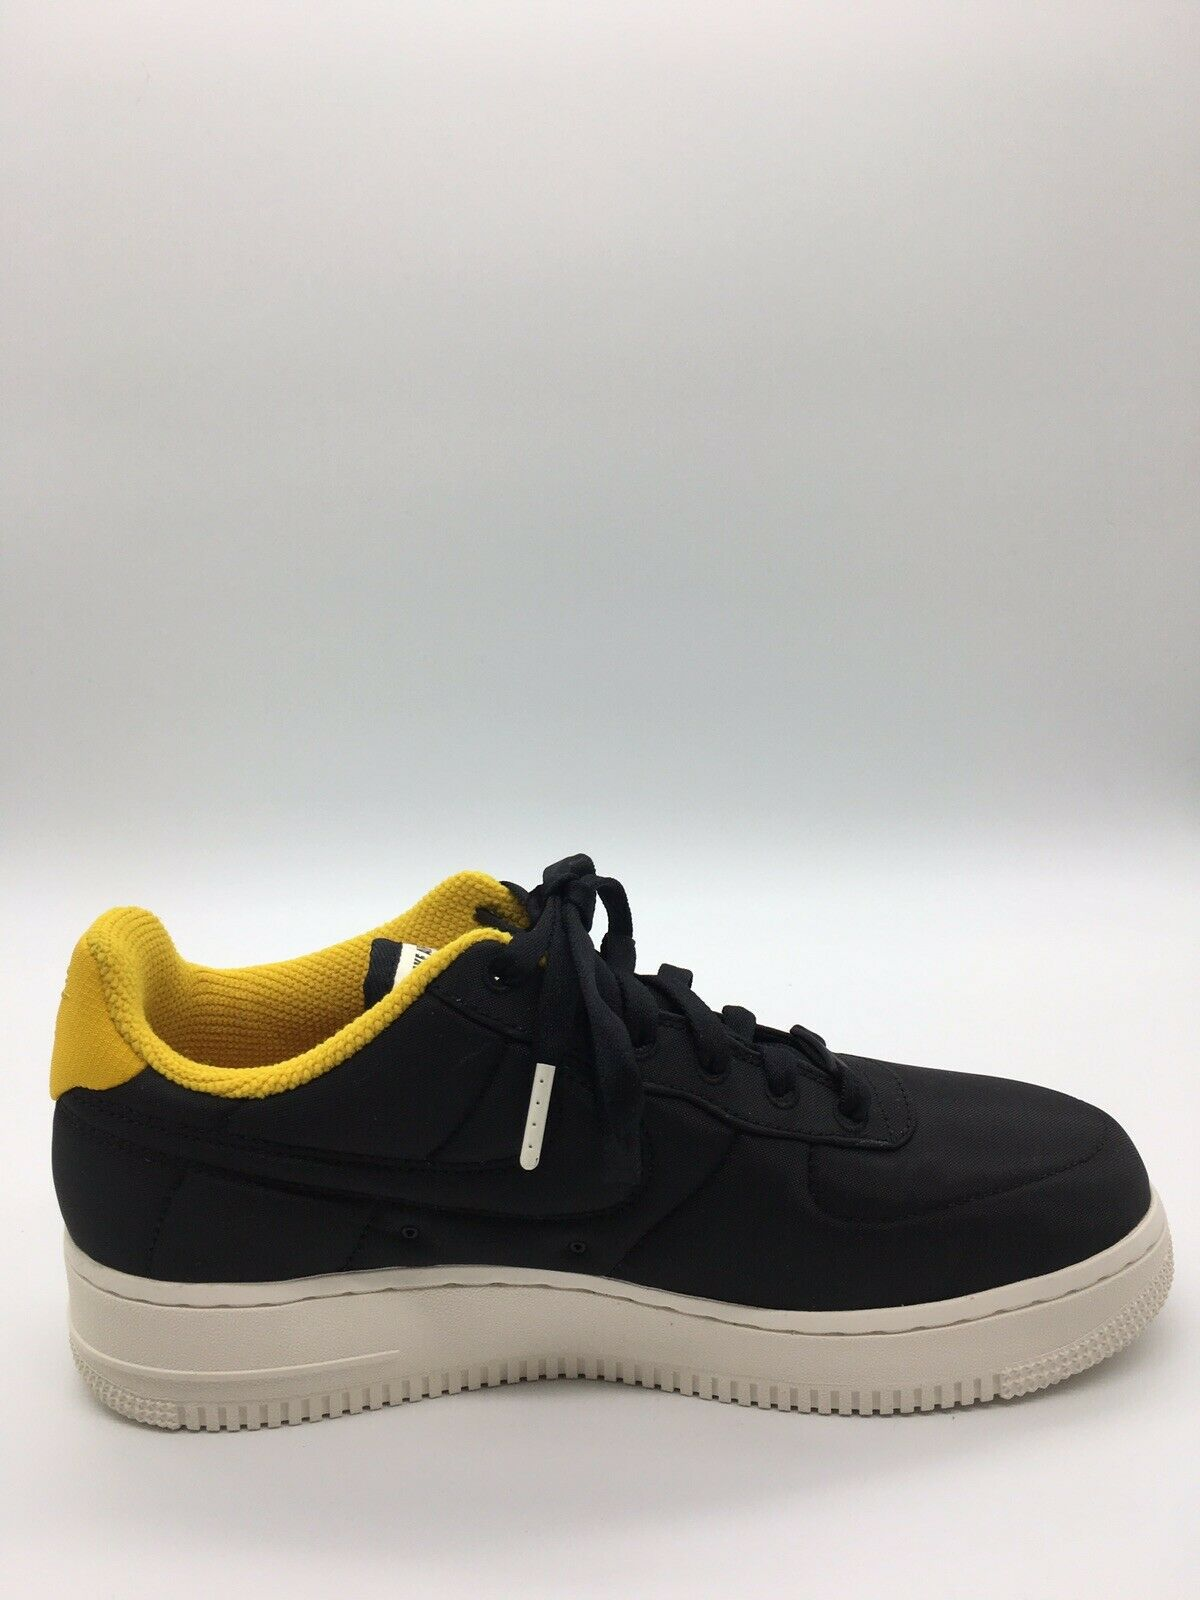 Air Nike Force Yellow 011 898889 Ochre 8.5Black Size shoes